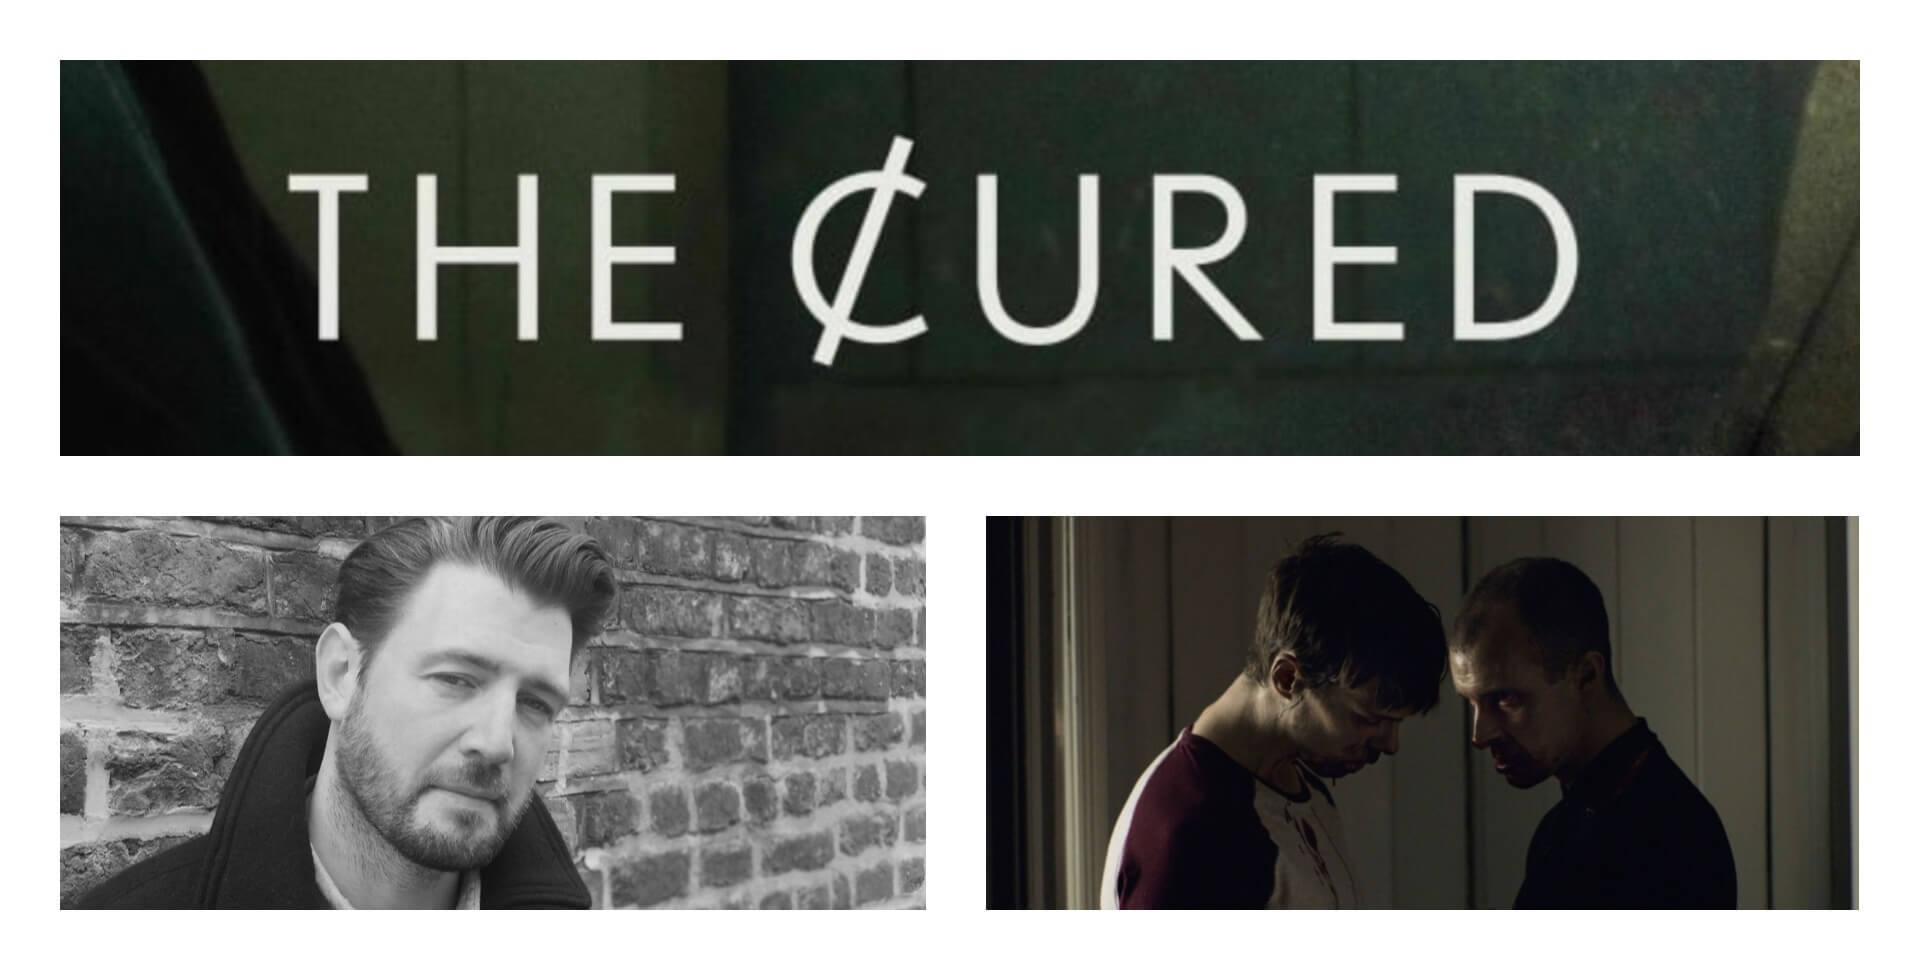 The Cured – Interview with Director David Freyne